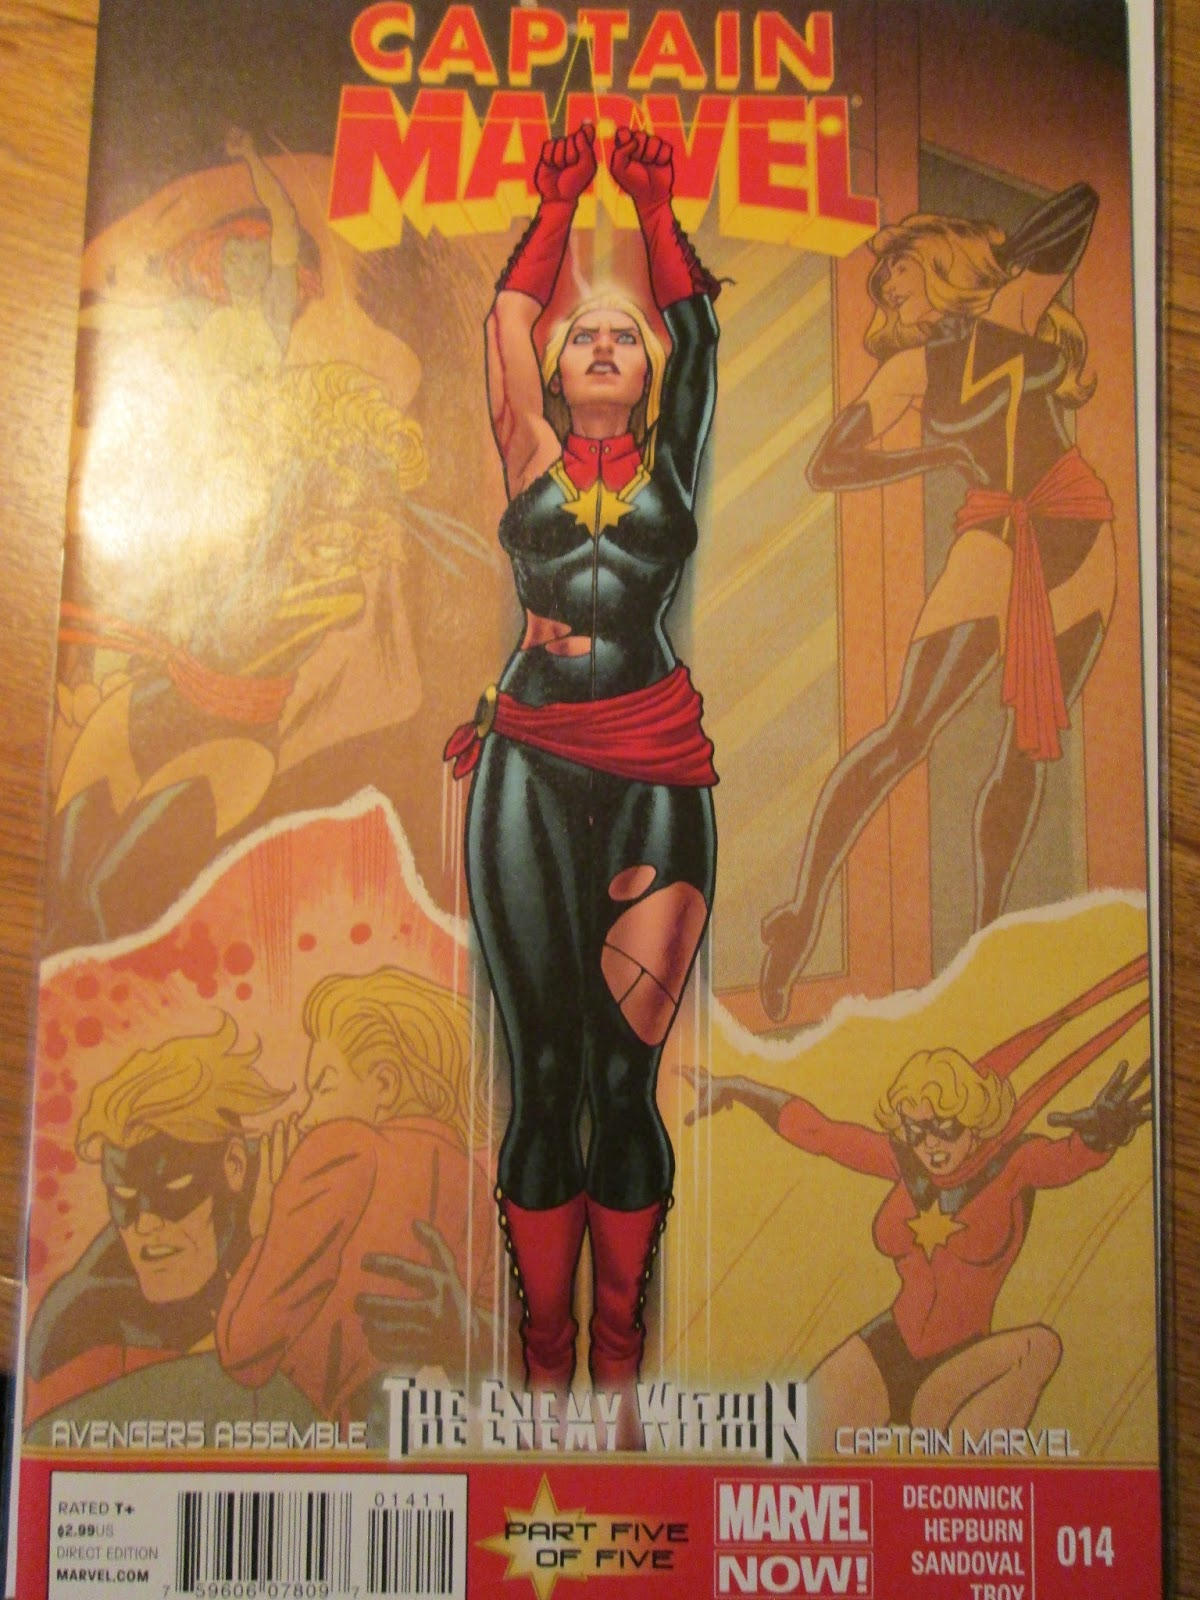 Swords of Sorrow #3 Cosplay Incentive Variant VF+//NM Cover I